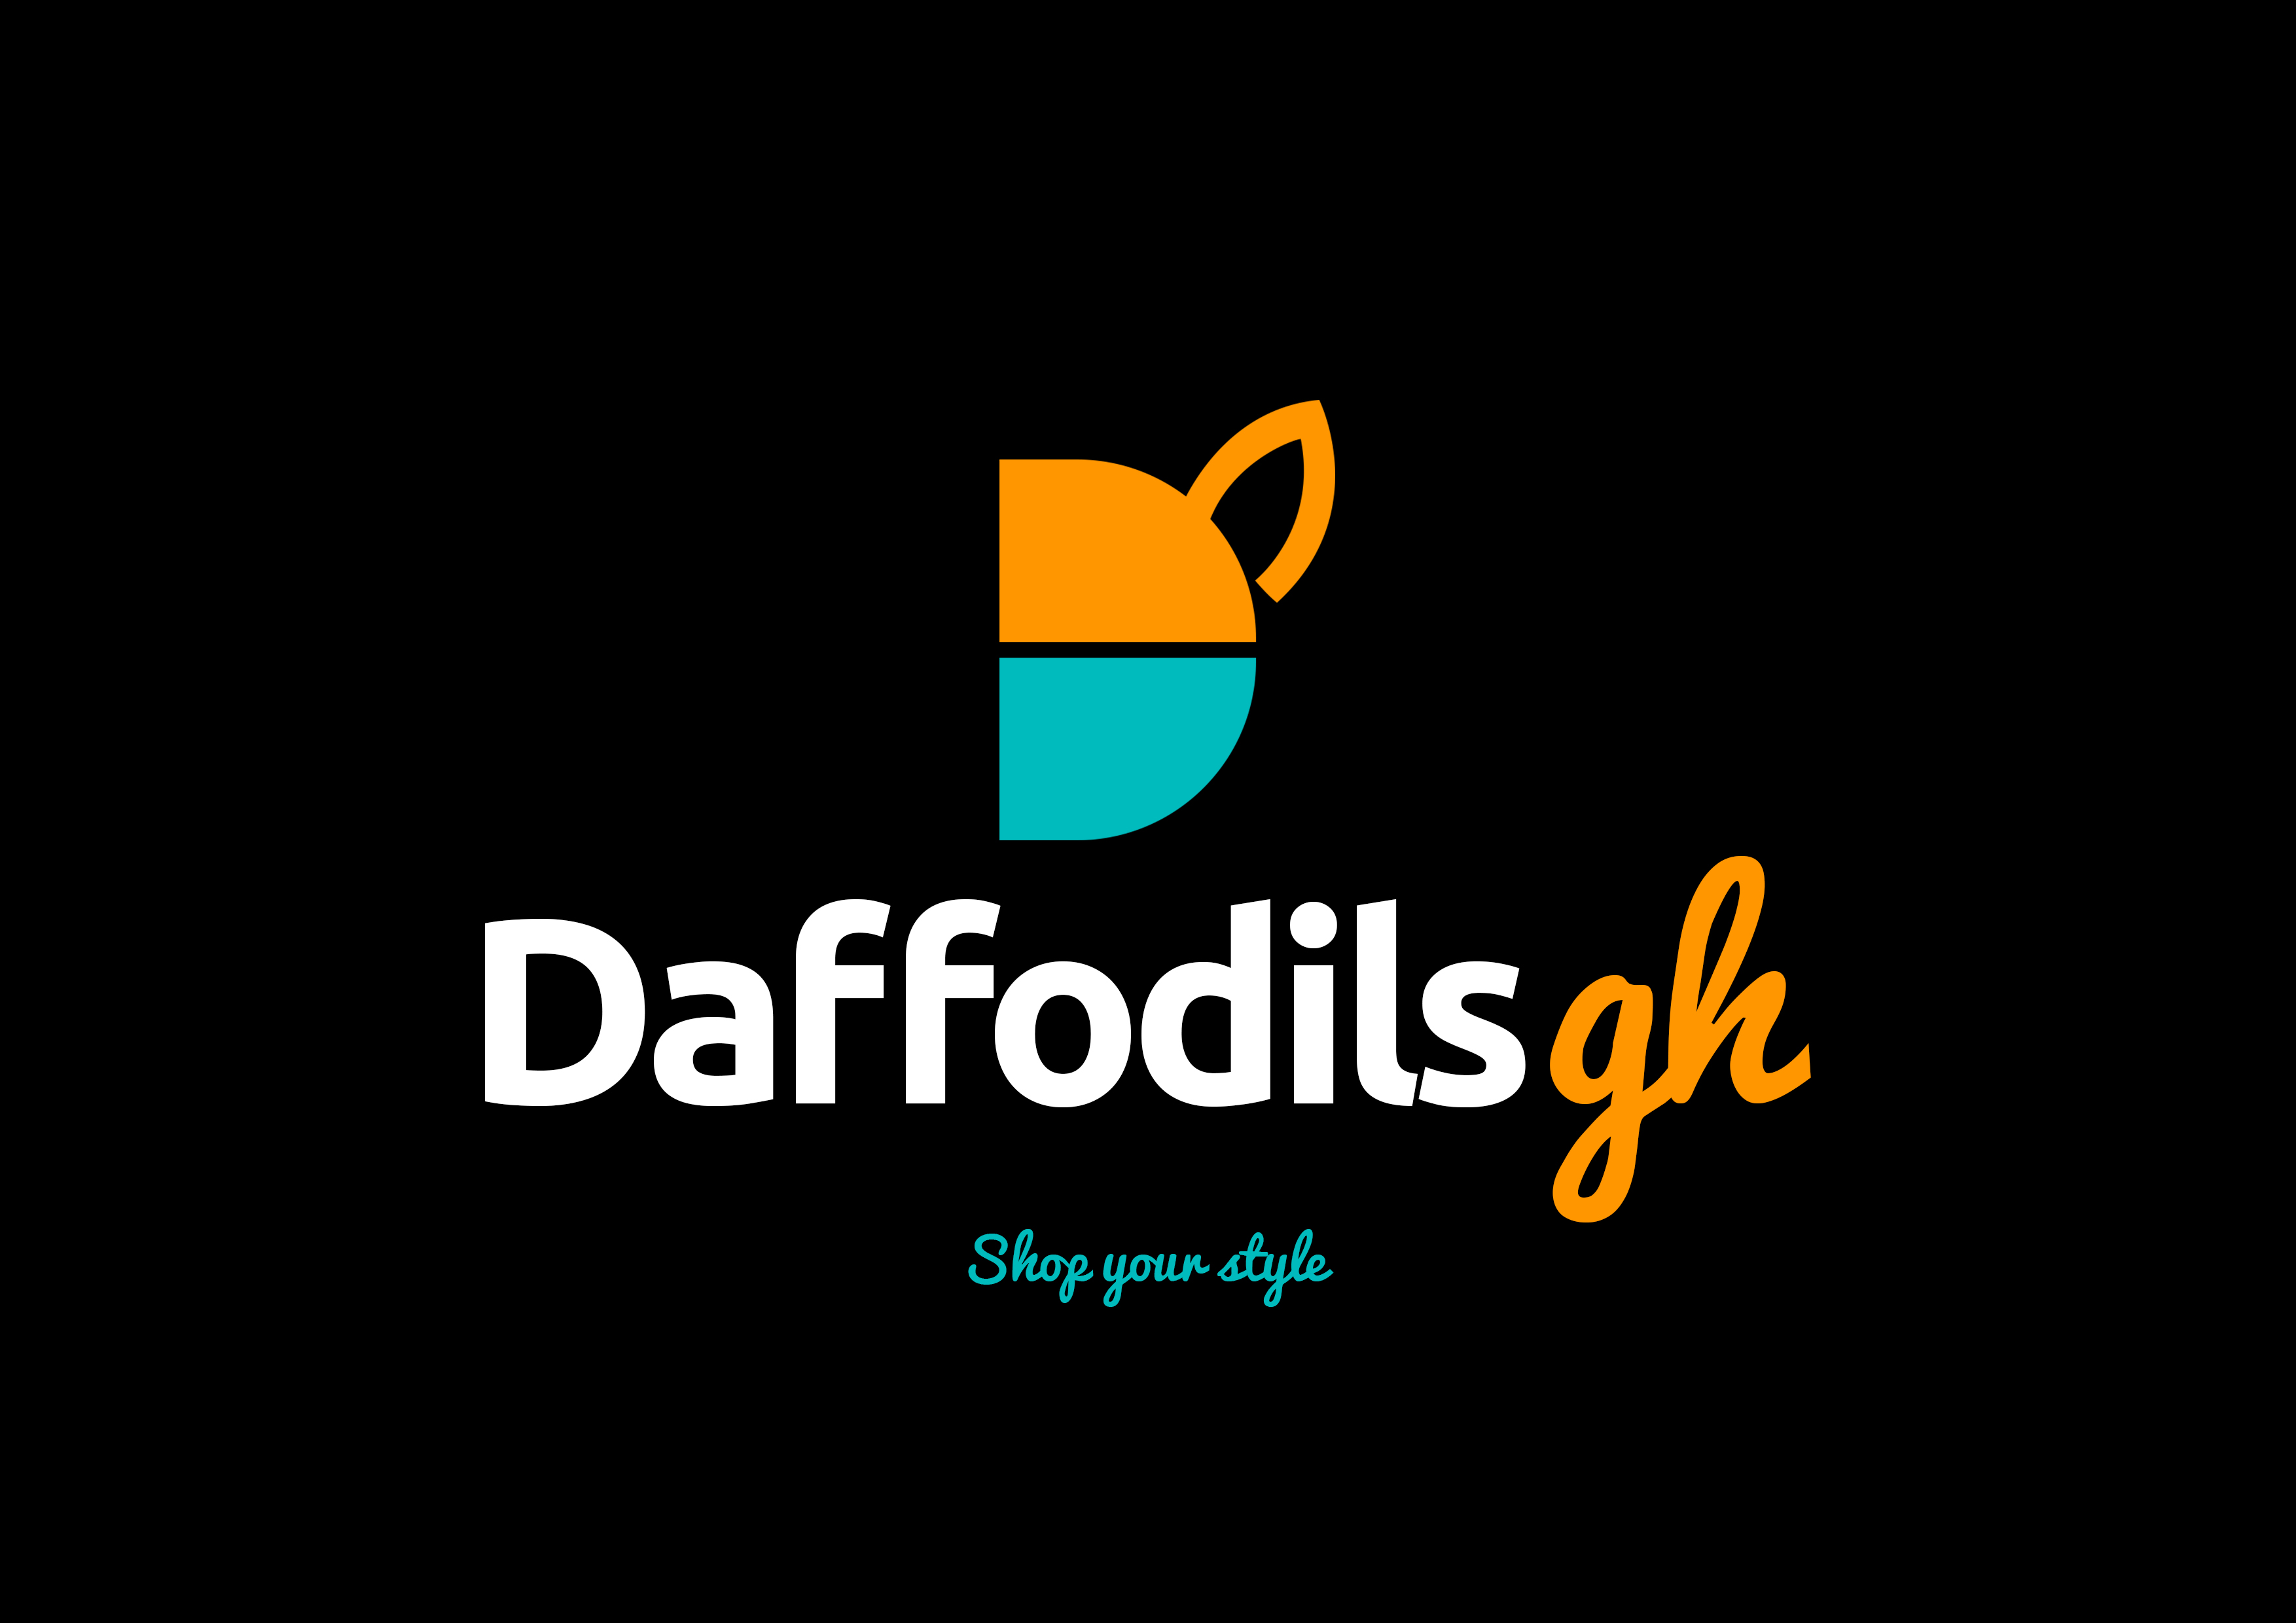 daffodils gh store